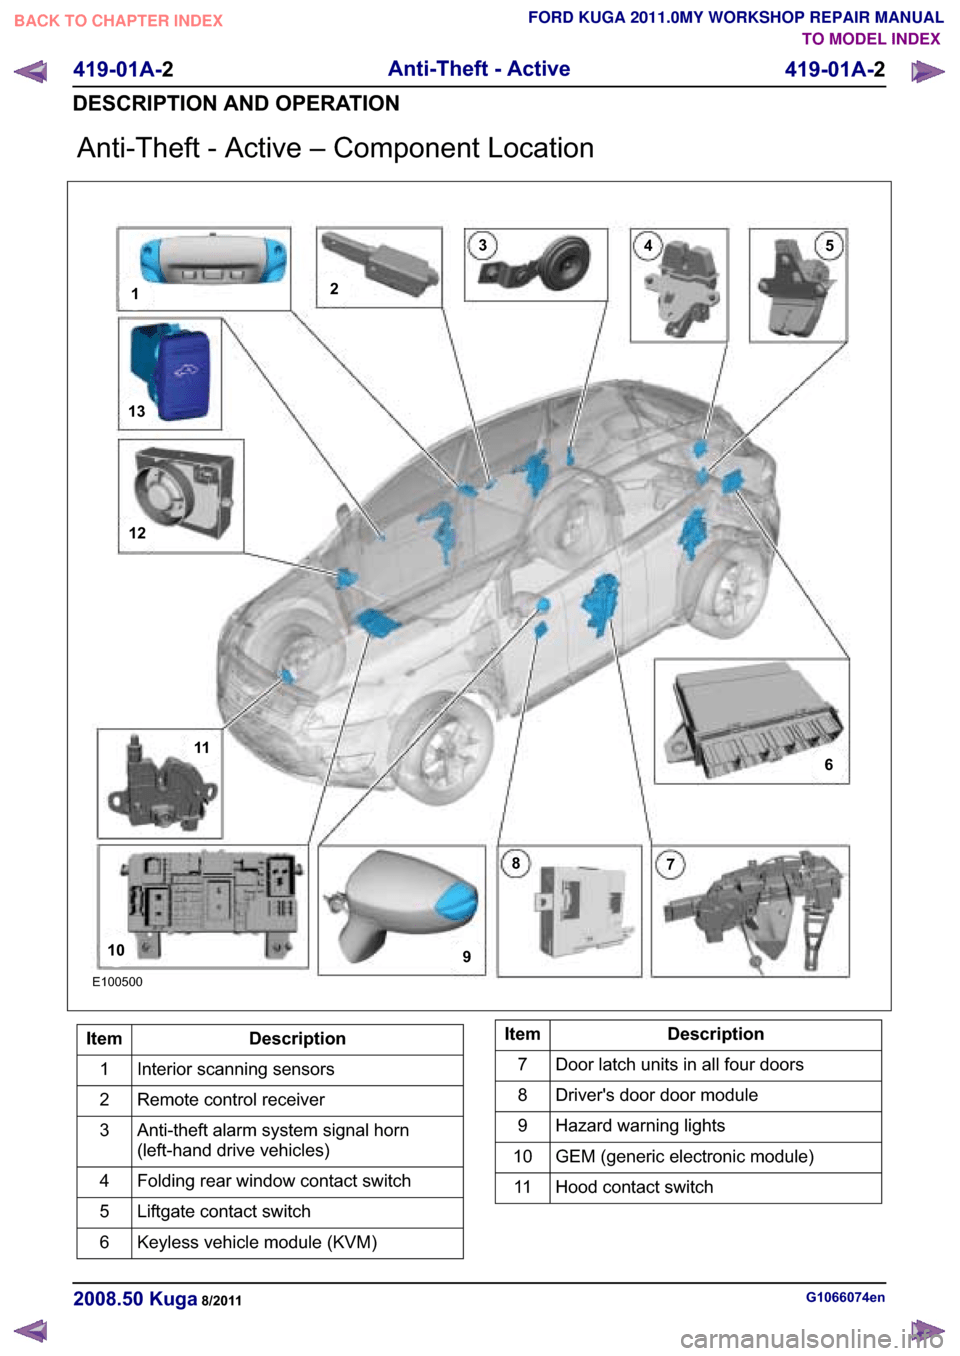 FORD KUGA 2011 1.G Workshop Manual (2057 Pages), Page 440